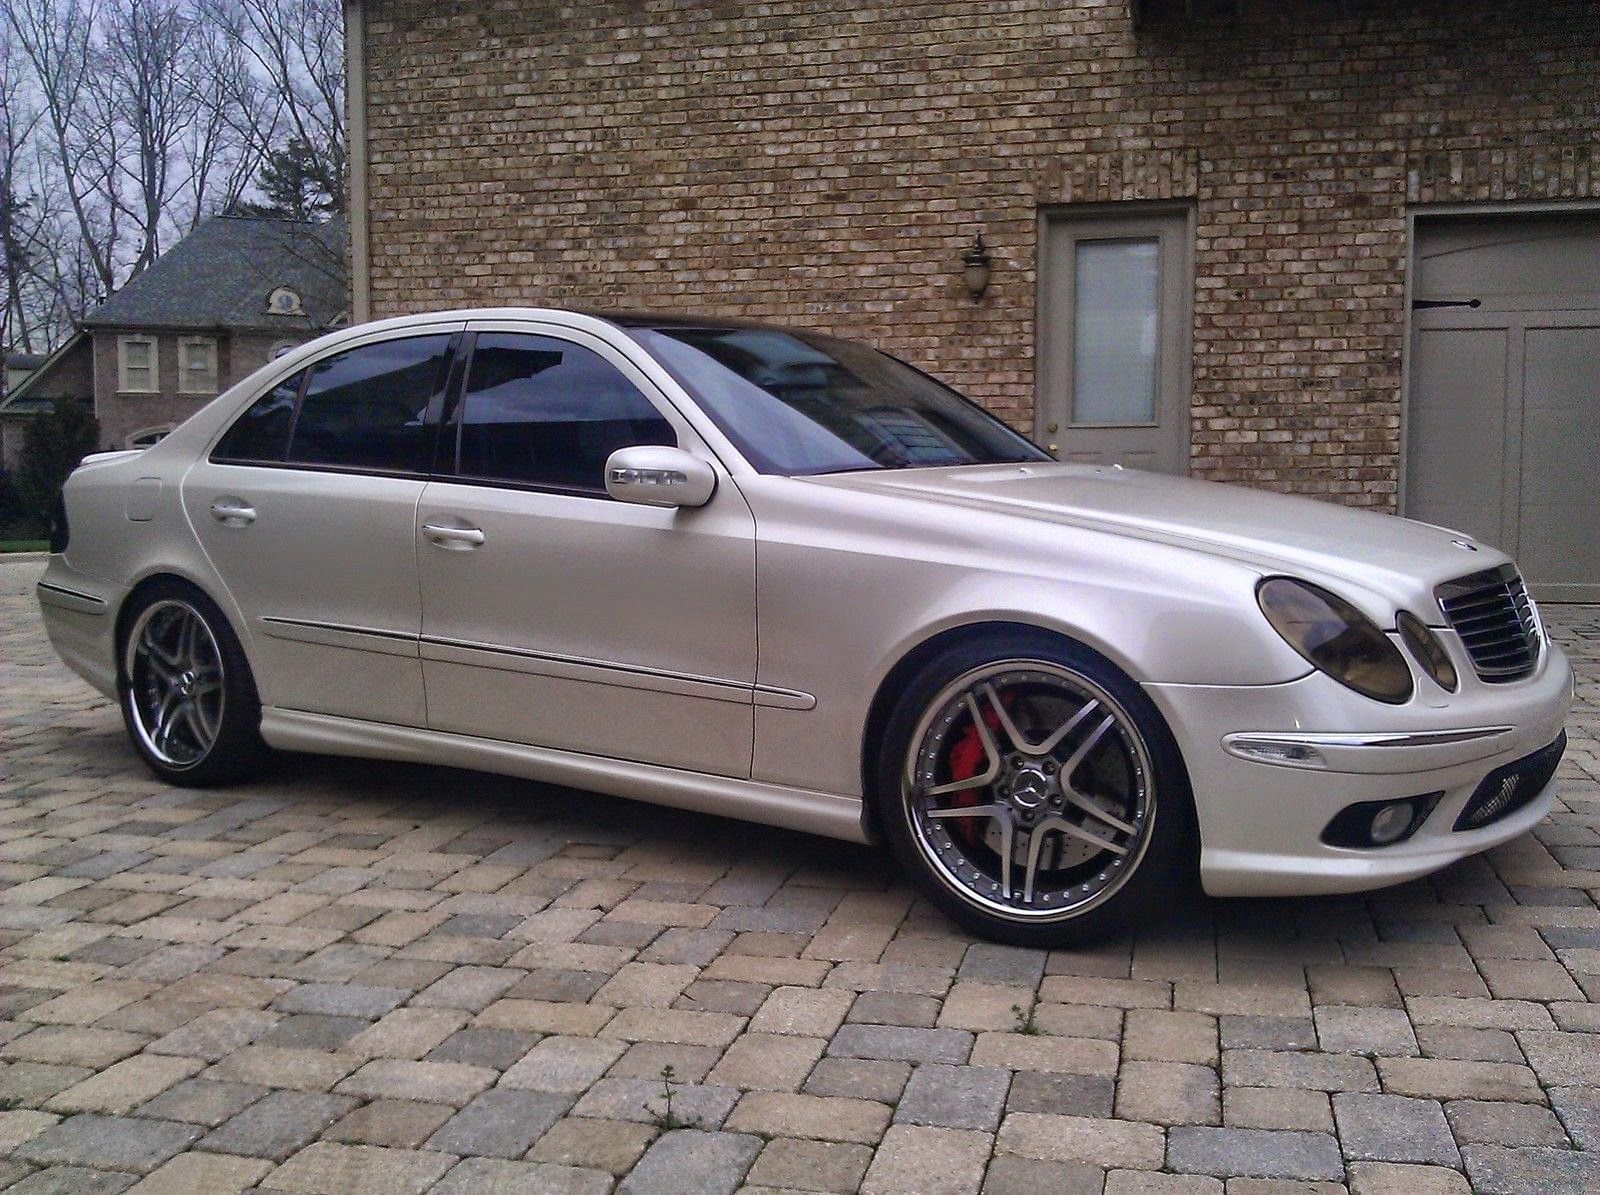 Mercedes Benz W211 E55 Amg On Autobahn Wheels Benztuning